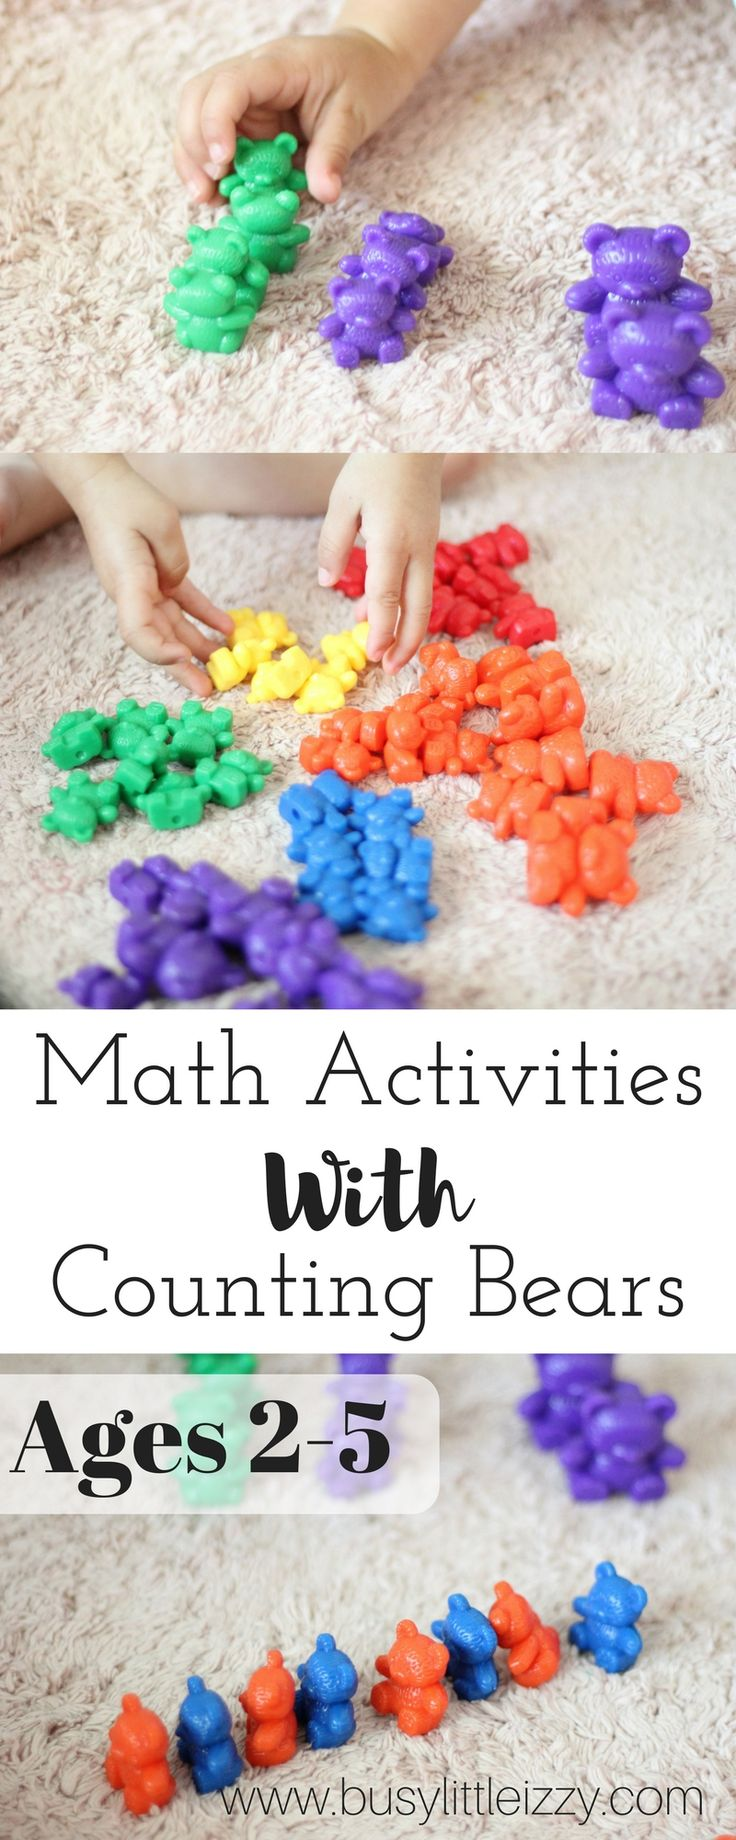 Math Activities with Counting Bears